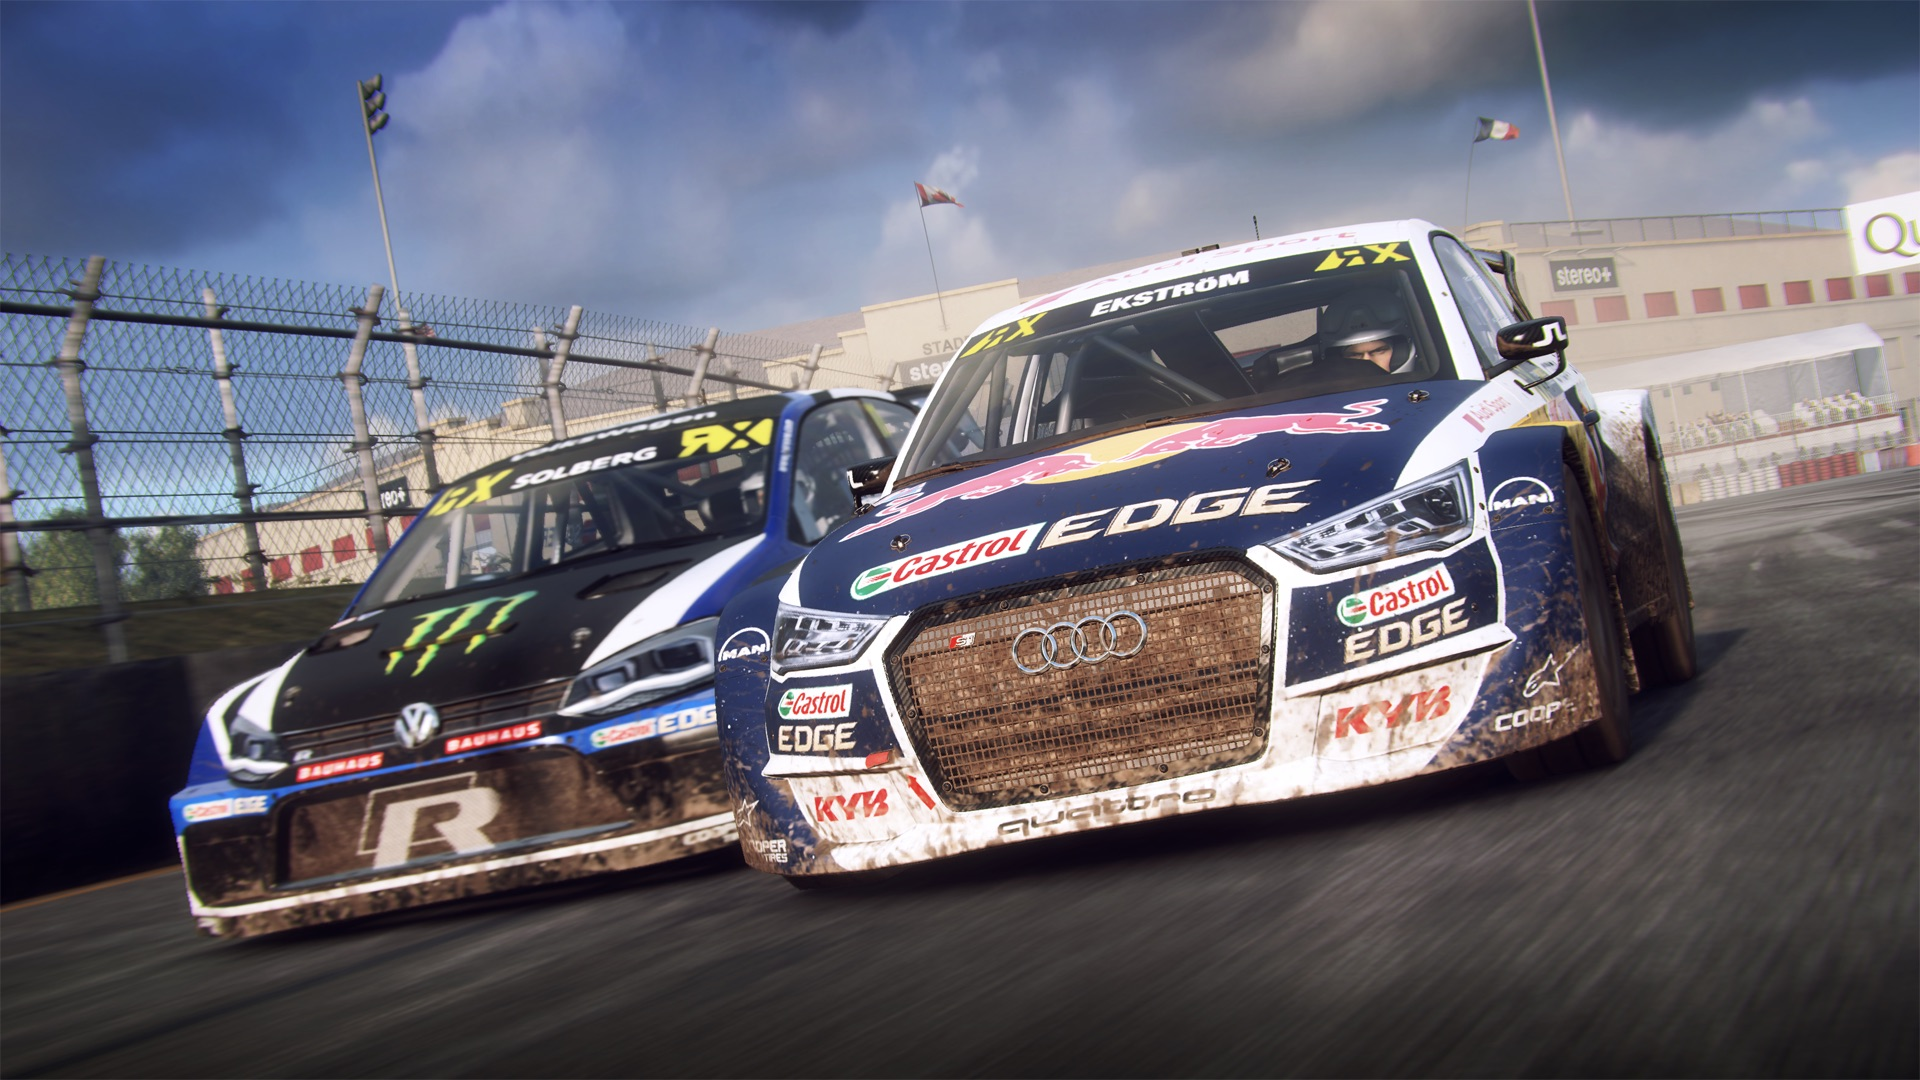 DiRT_Rally_2.0_Audi_RX_2